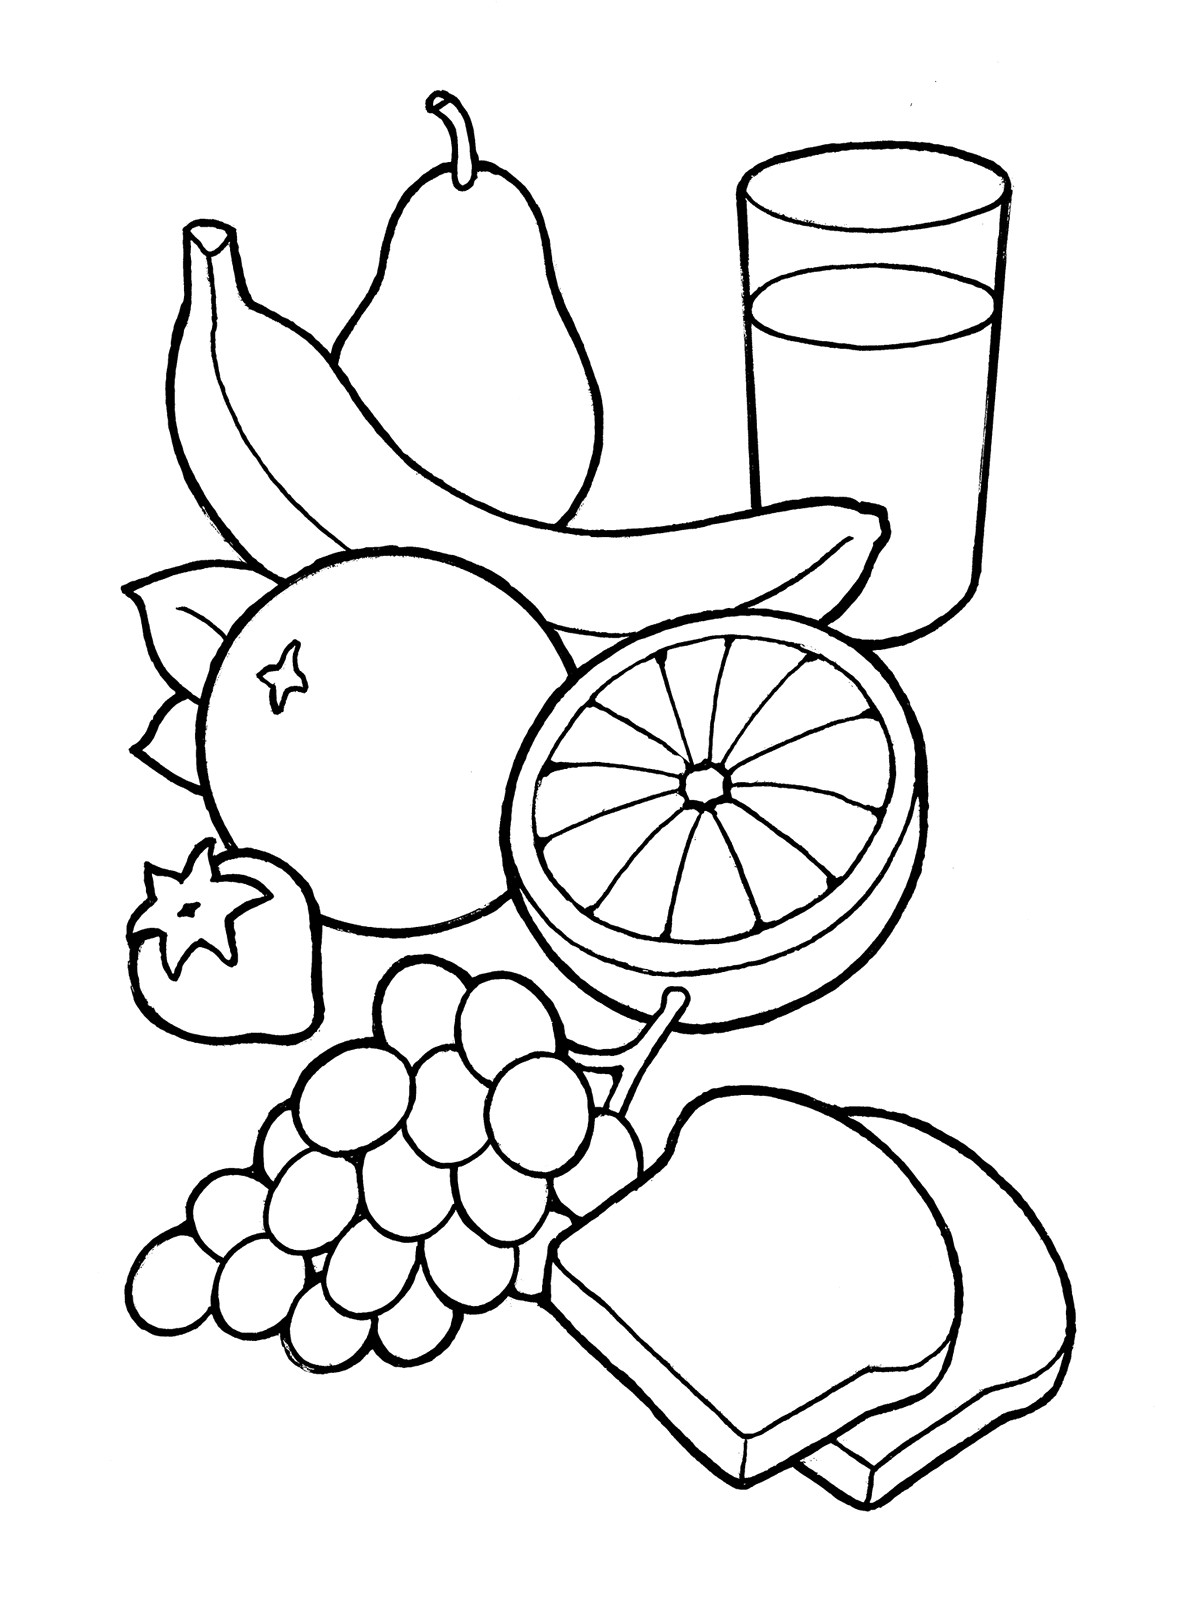 Healthy foods clipart black and white 6 » Clipart Station.